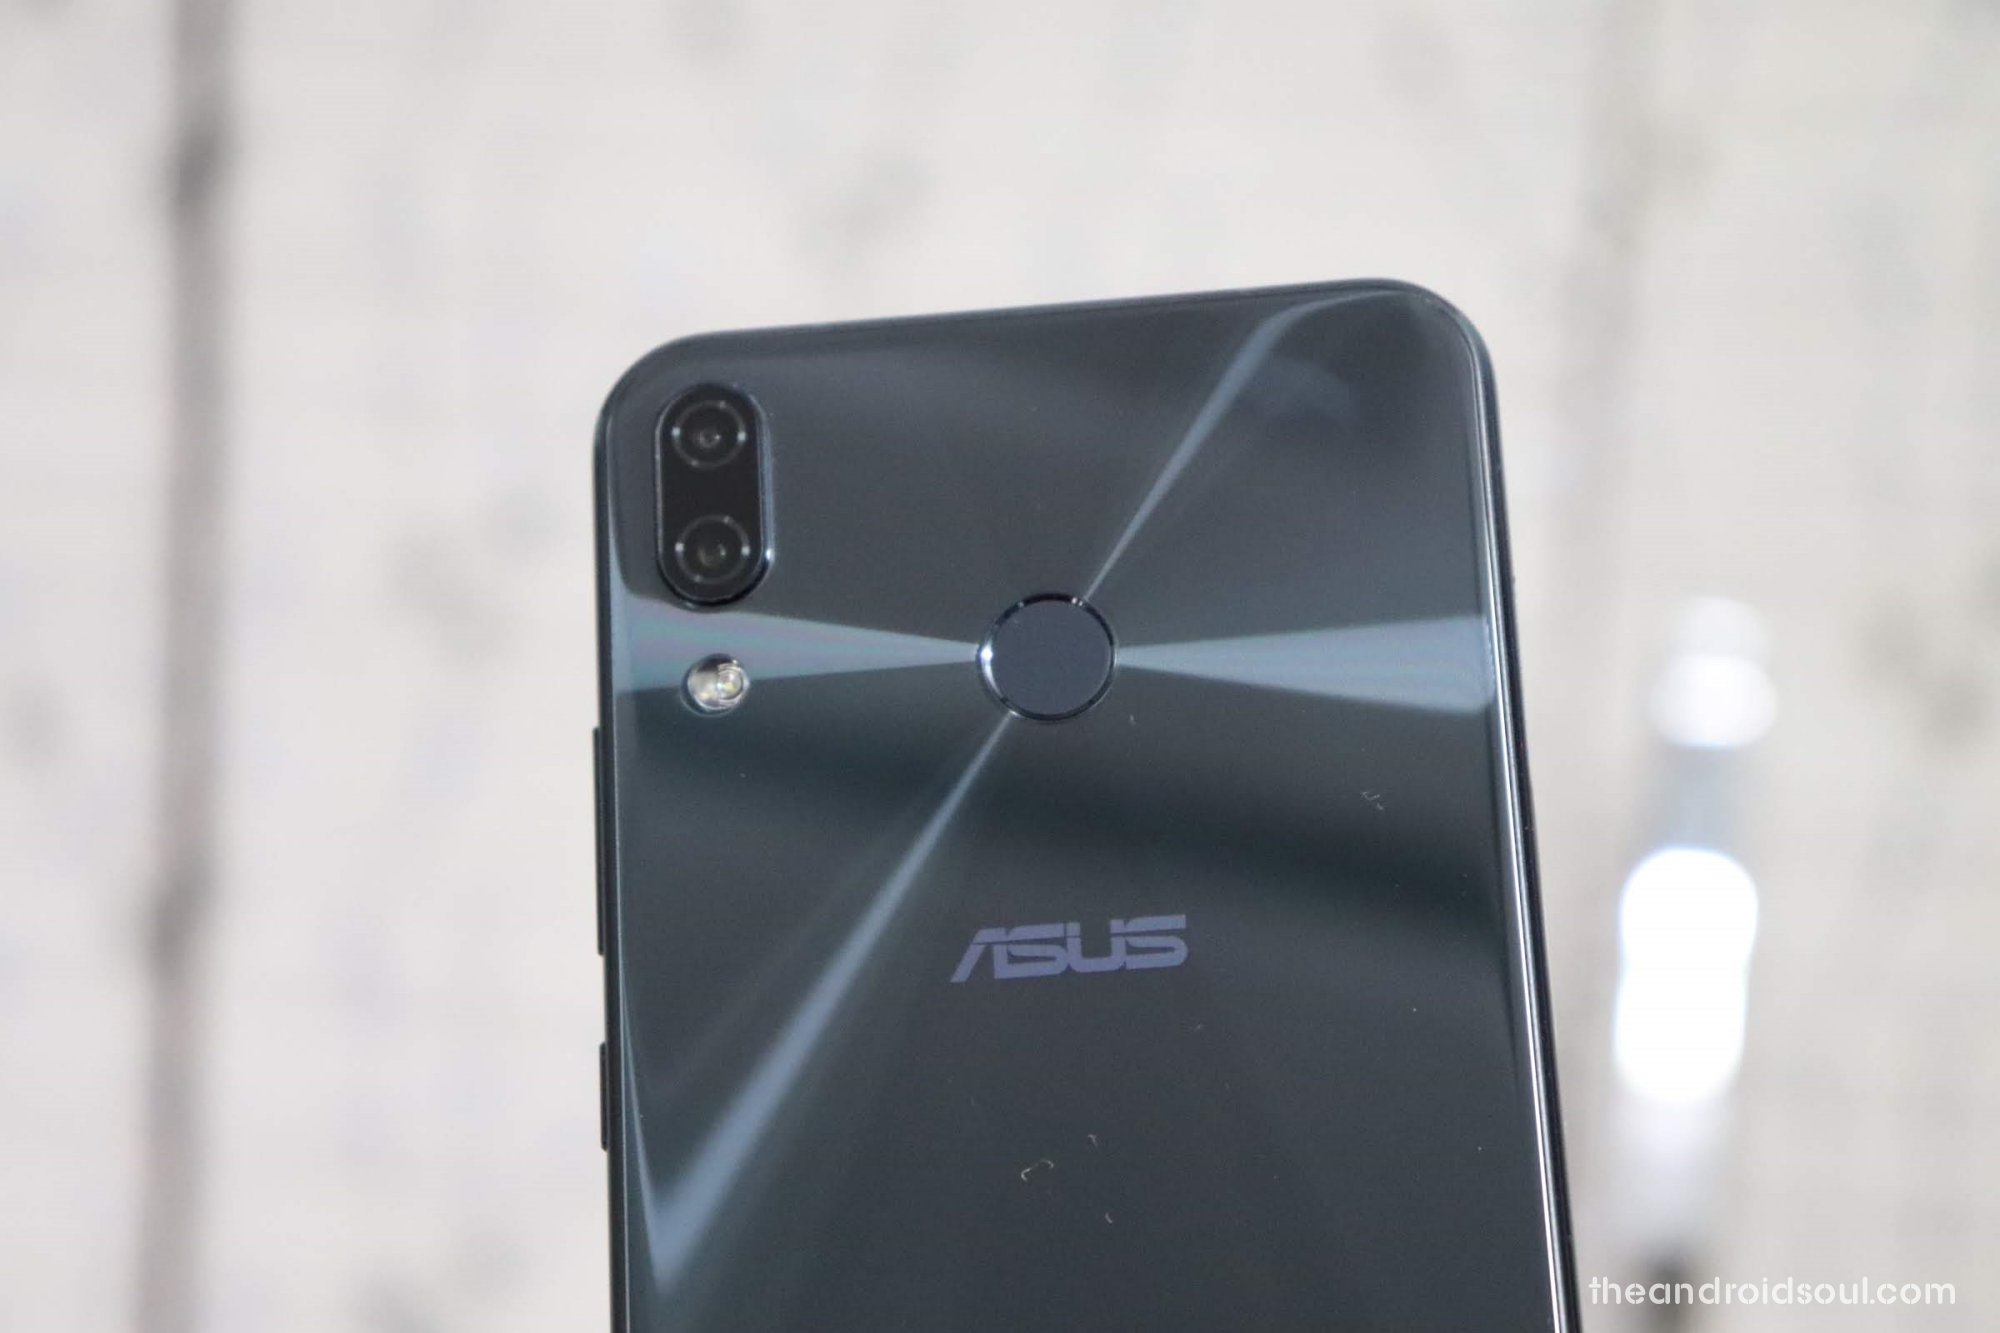 Asus Android 9 Pie update: Stable available for the ZenFone